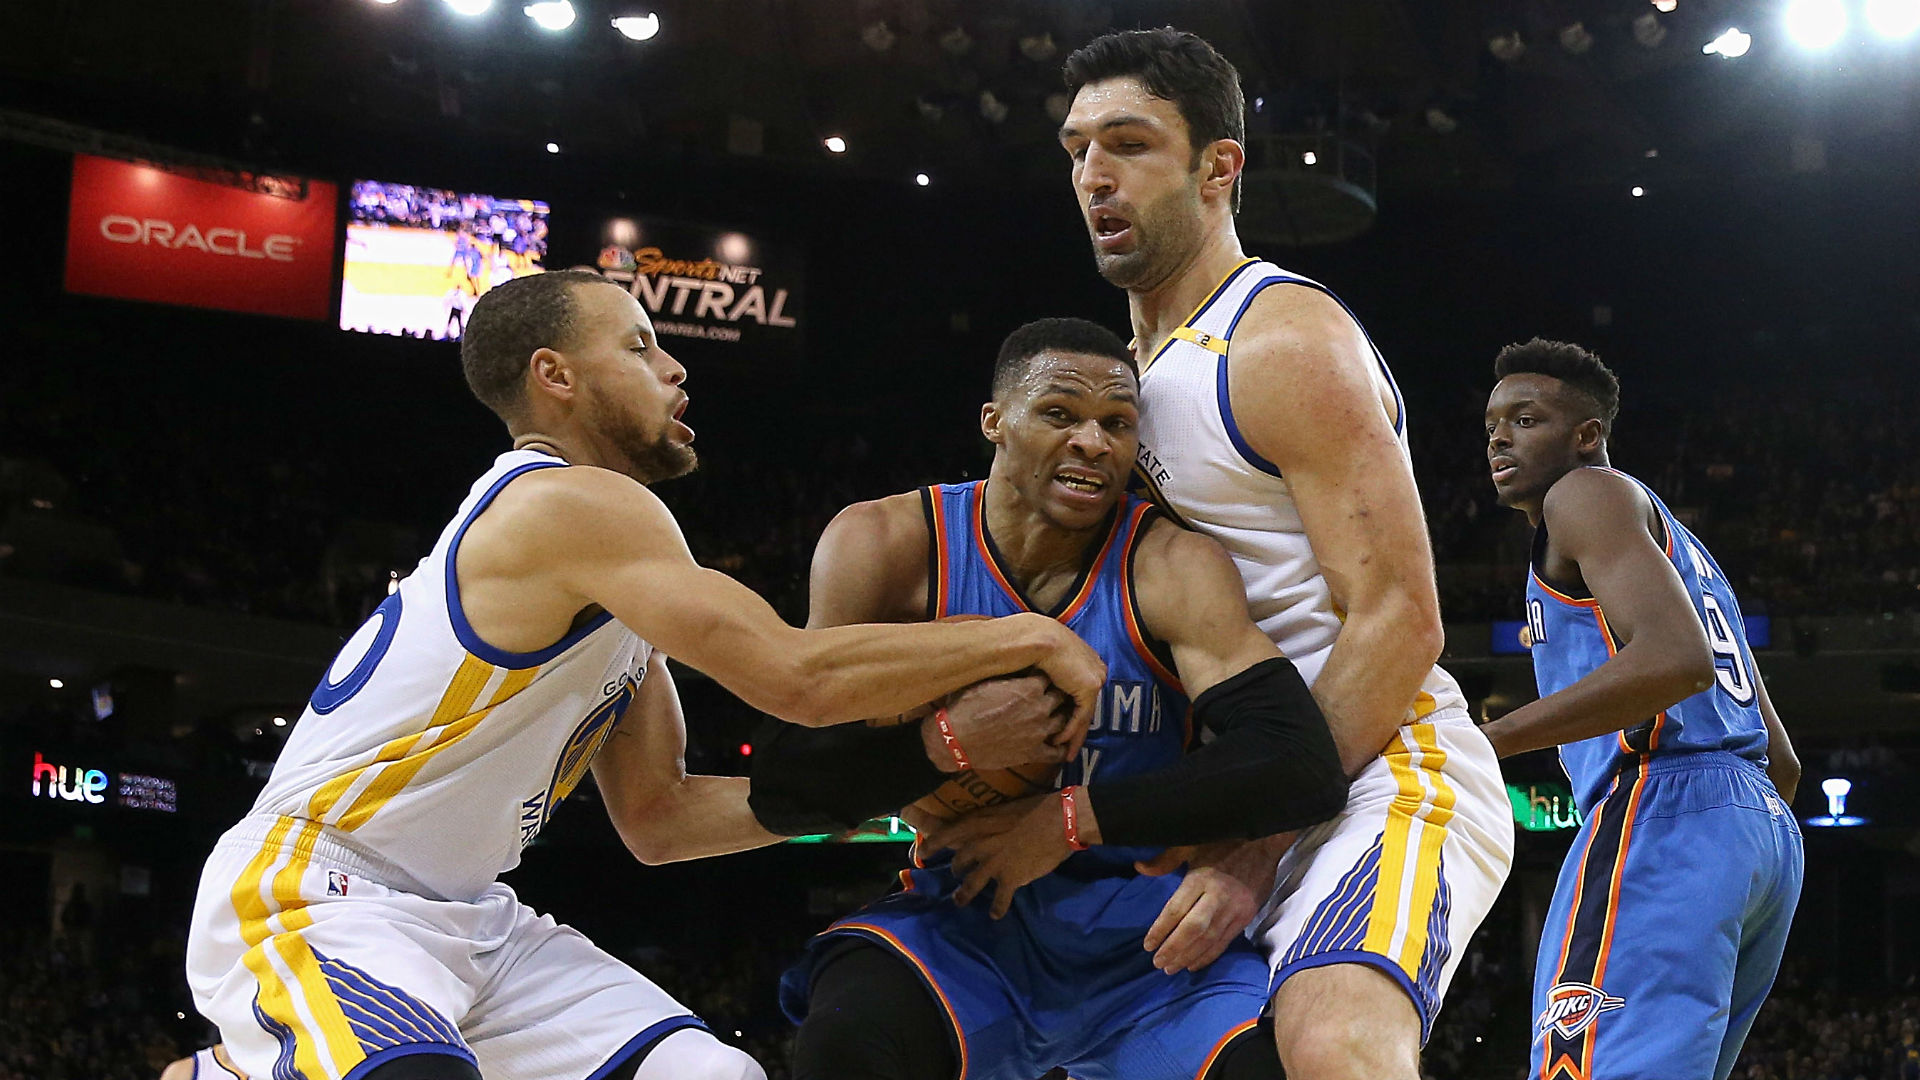 Stephen Jackson: Zaza Pachulia Plays Dirty to Compensate for Lack of Talent